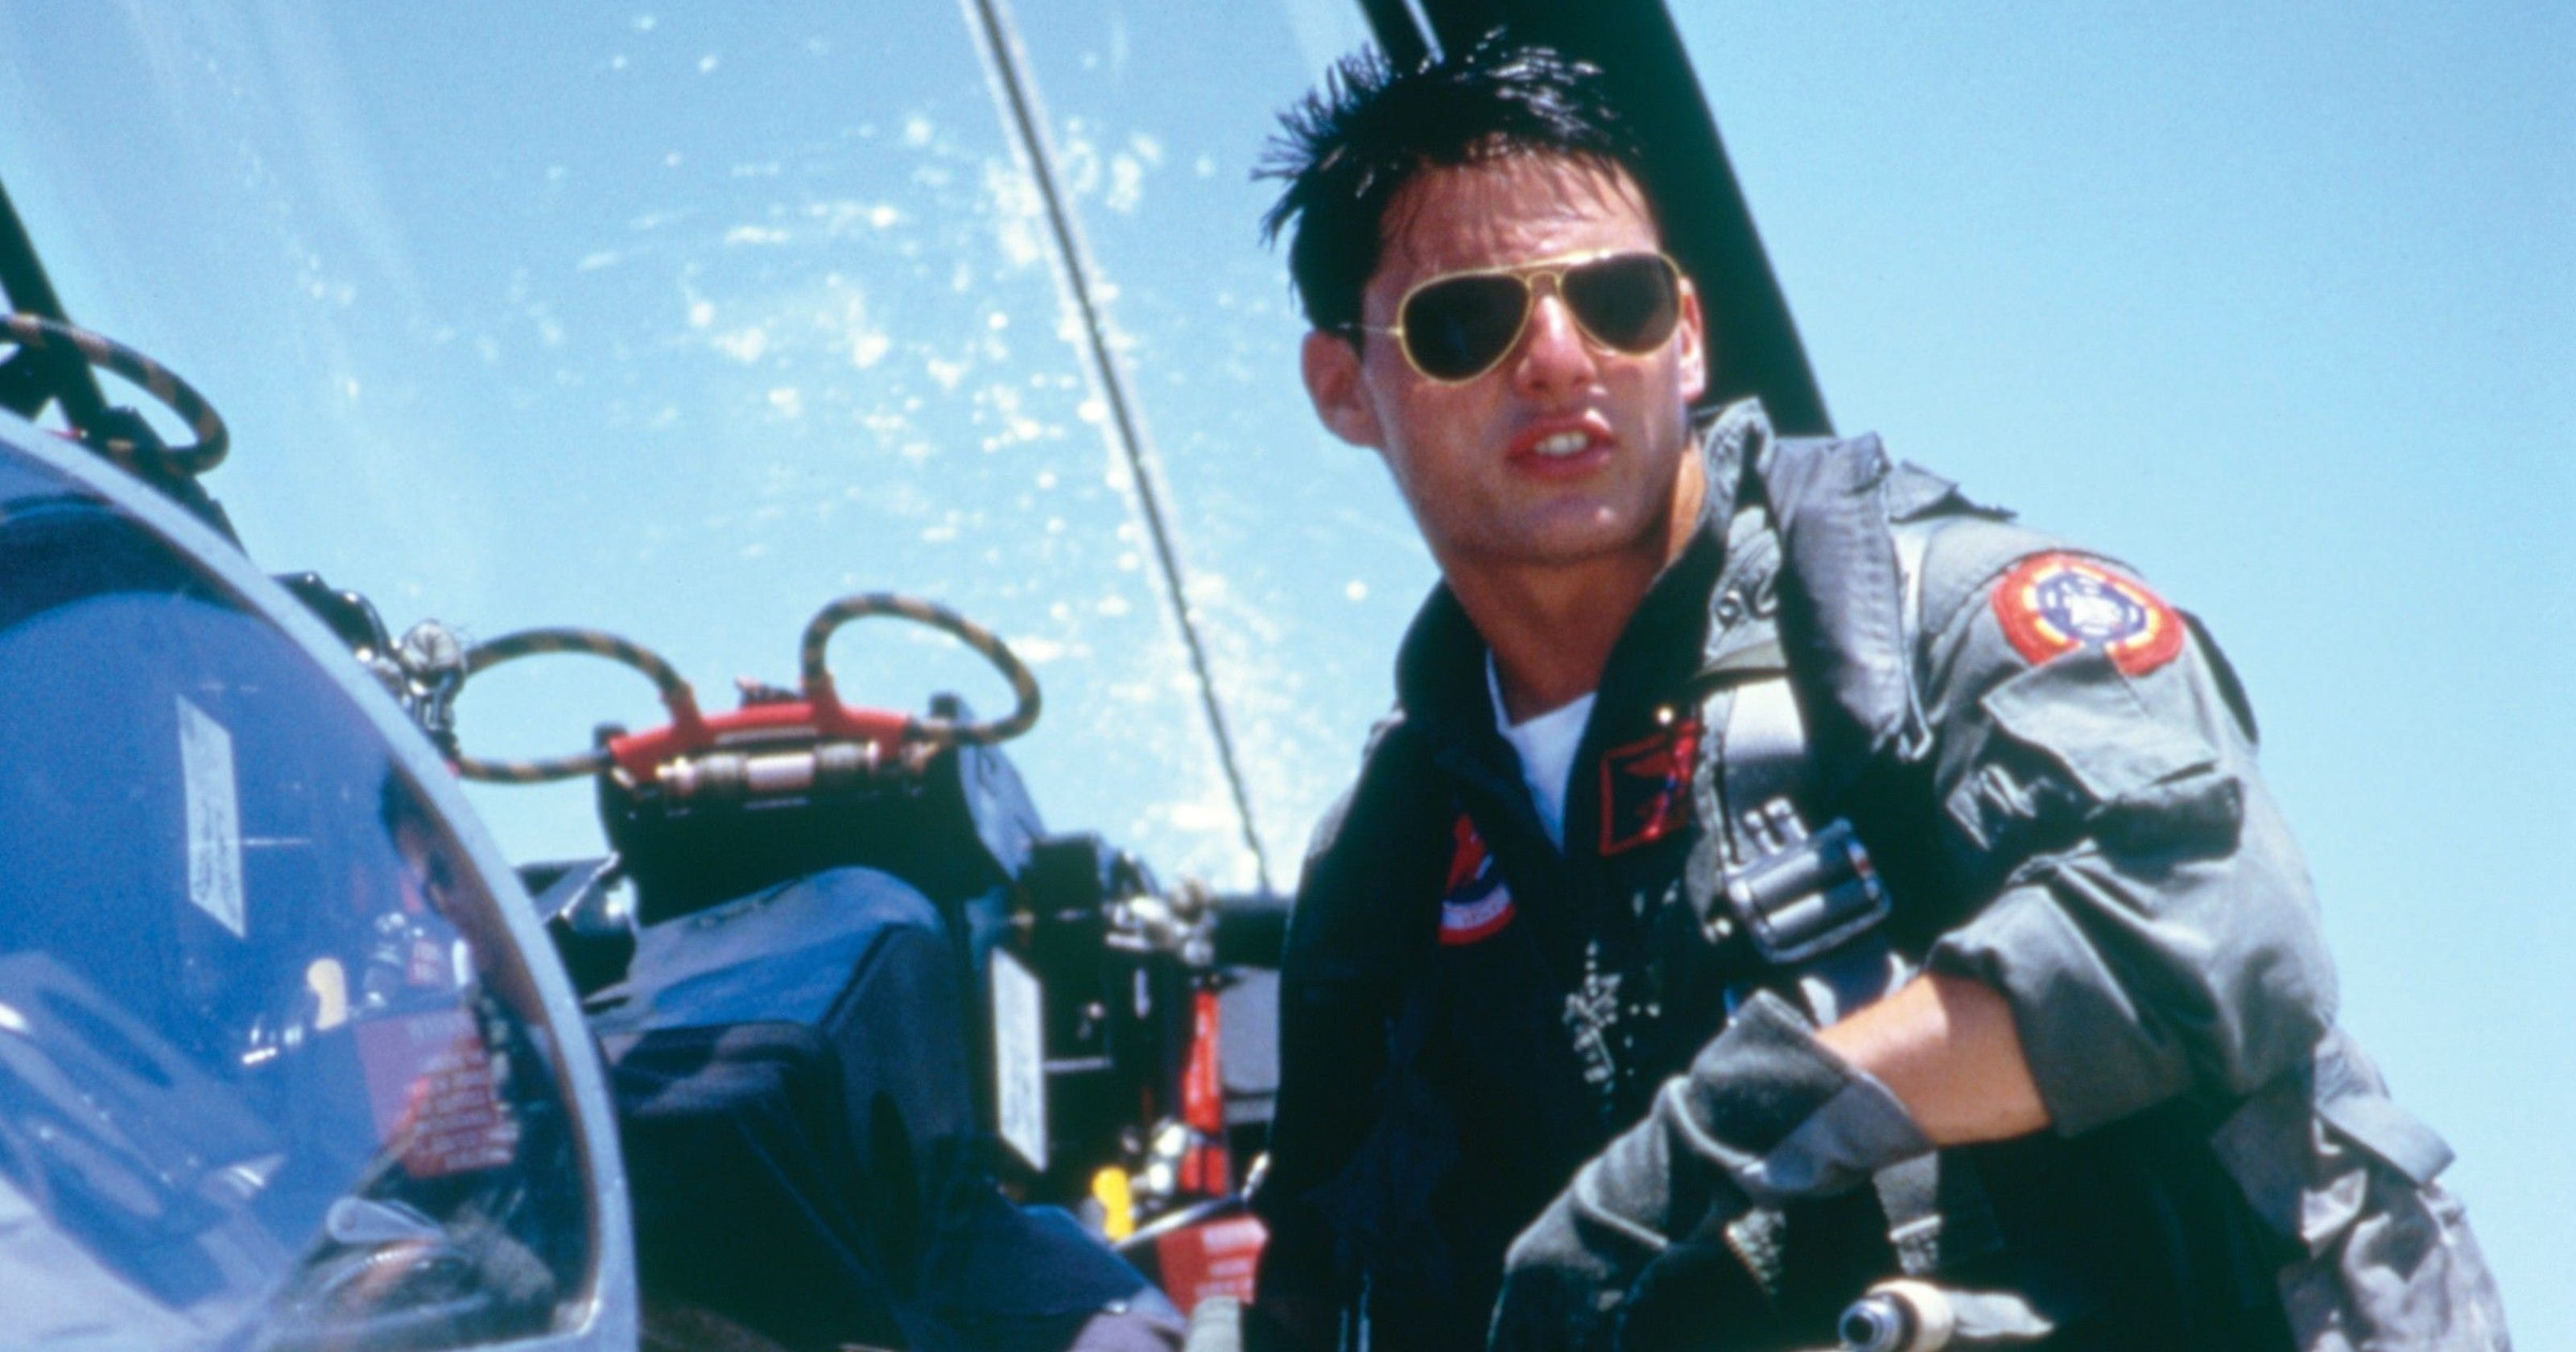 Top Gun' sequel 'Maverick' delayed one year, now due out